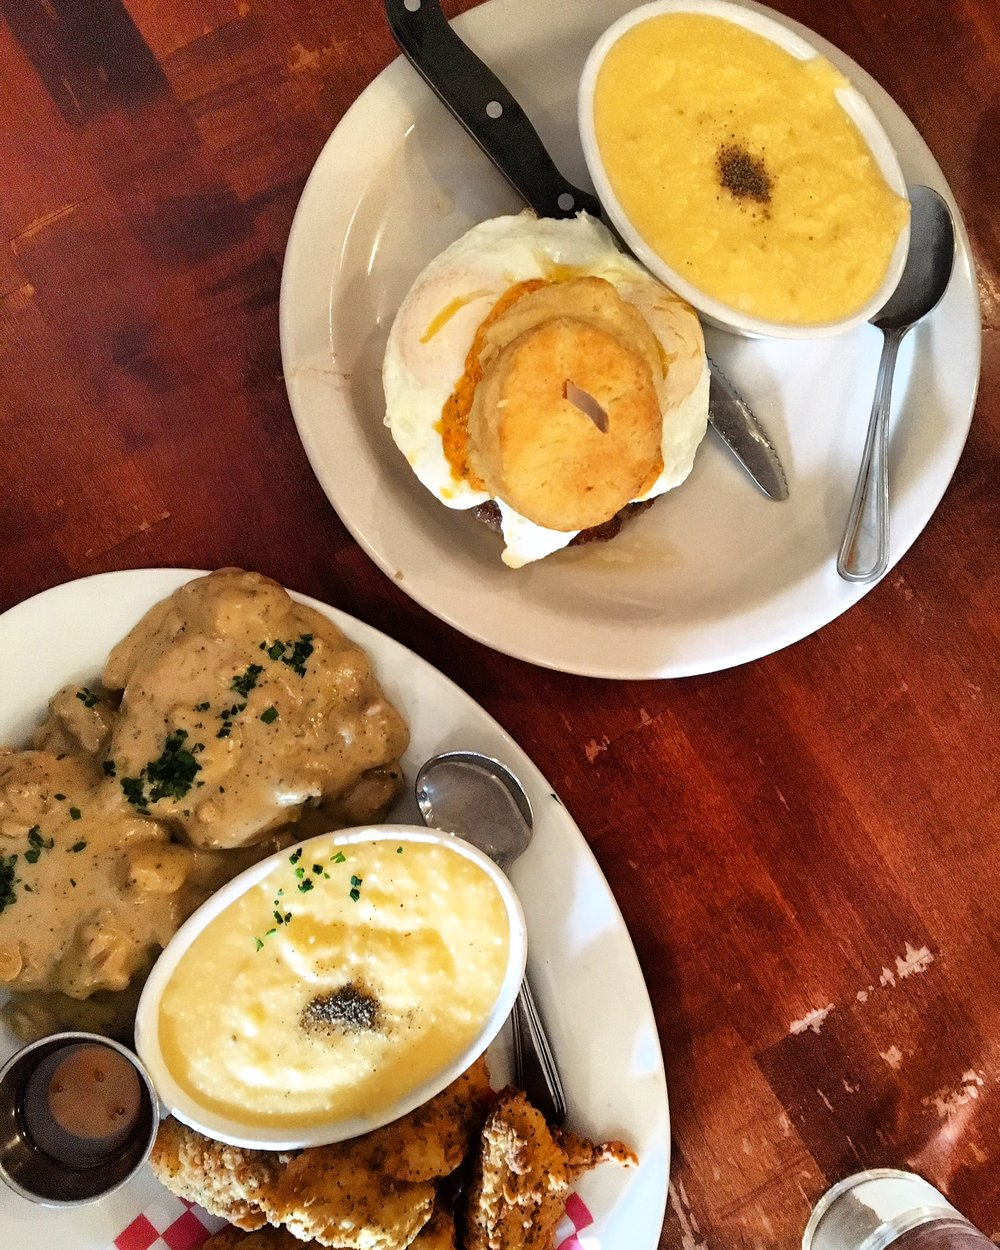 So back to breakfast. I had two biscuits with sausage gravy and a side of cheddar grits. Dan had a pimento cheese & sausage biscuit sandwich. Four thumbs up on this meal!